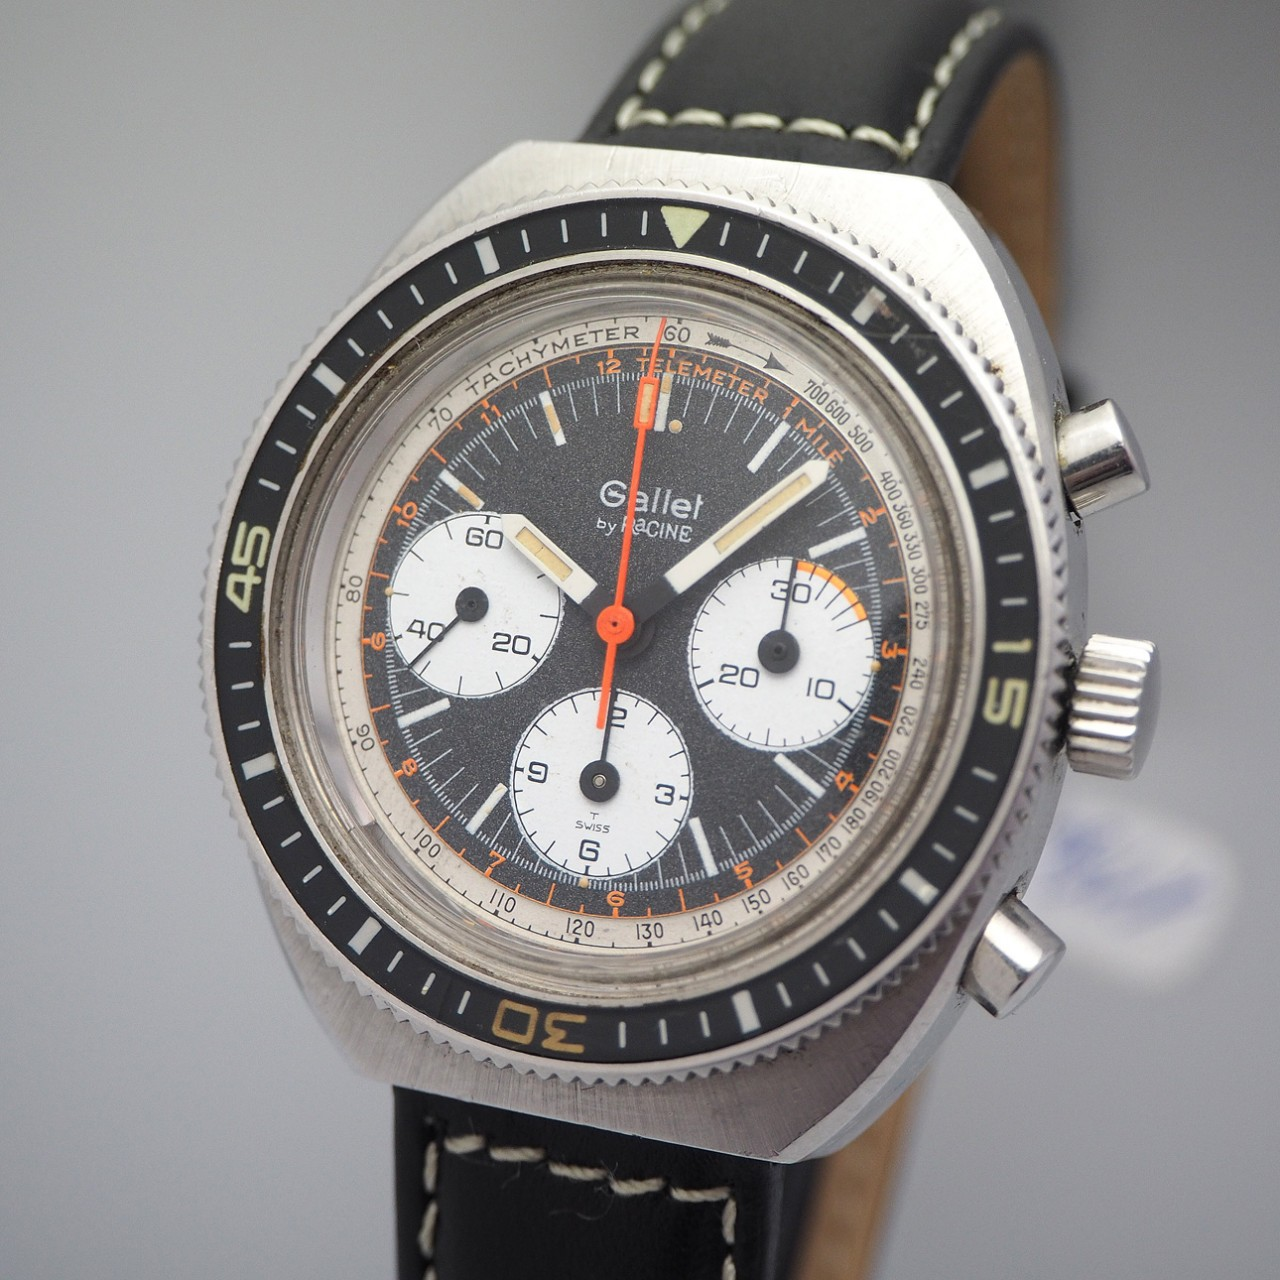 Gallet By Racine Chronograph Excelsior Park